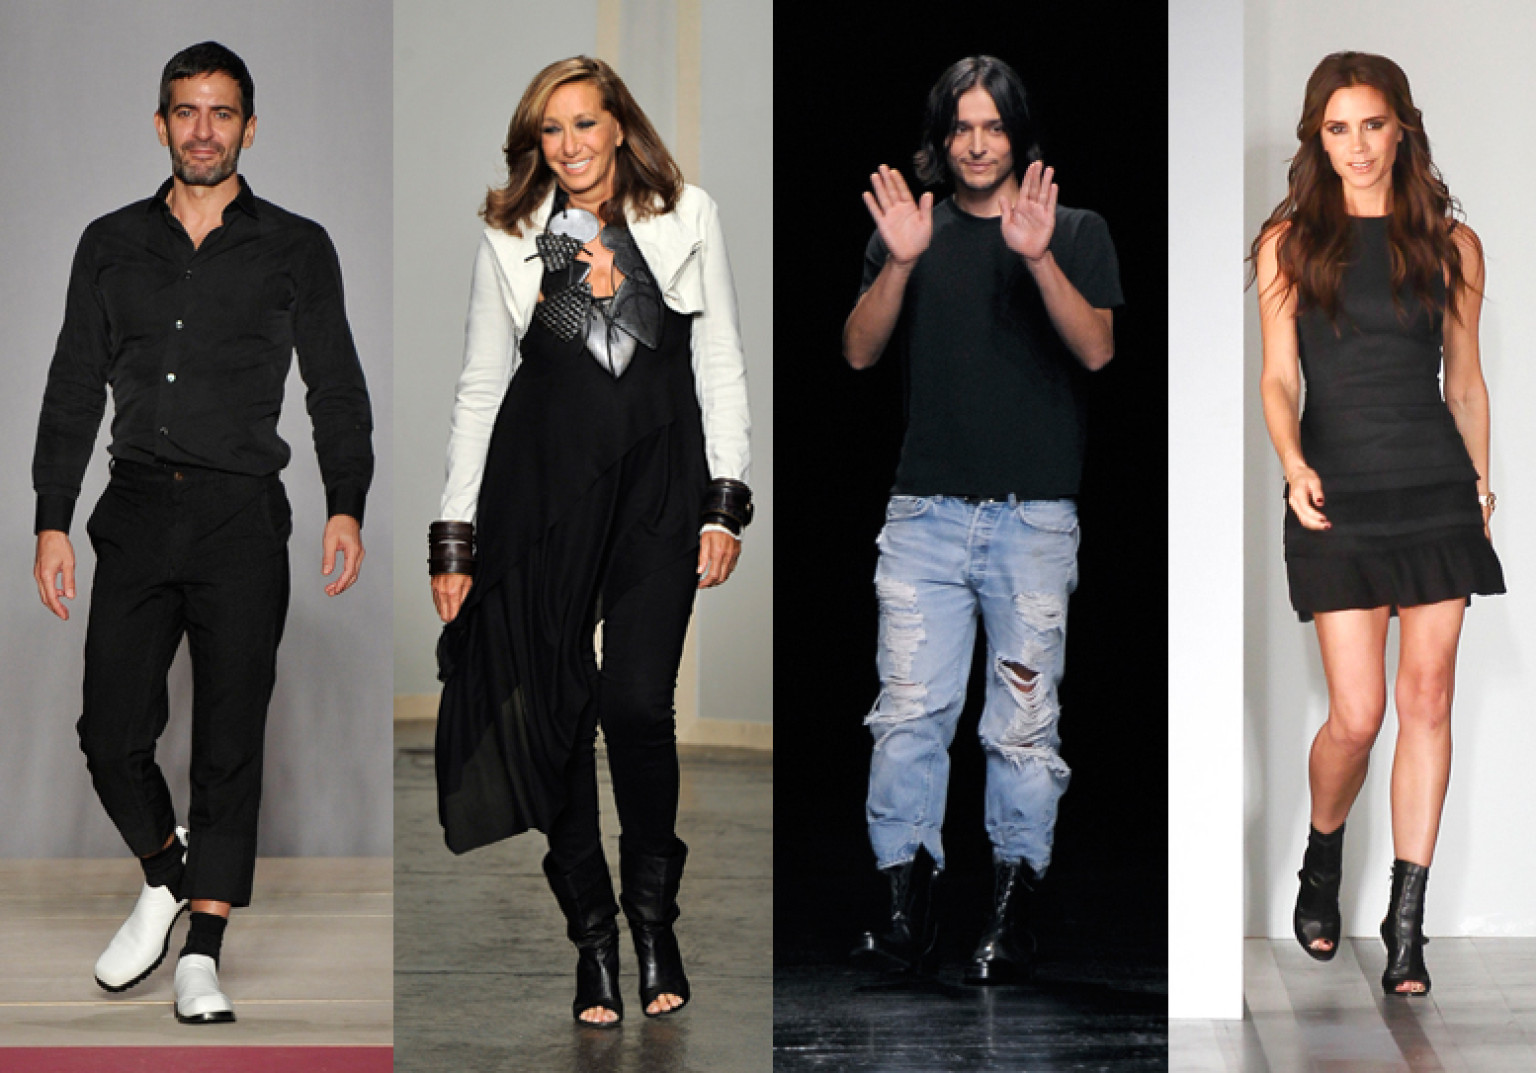 New York Fashion Week Designers Michael Kors Alexander Wang And More In Their Runway Uniforms